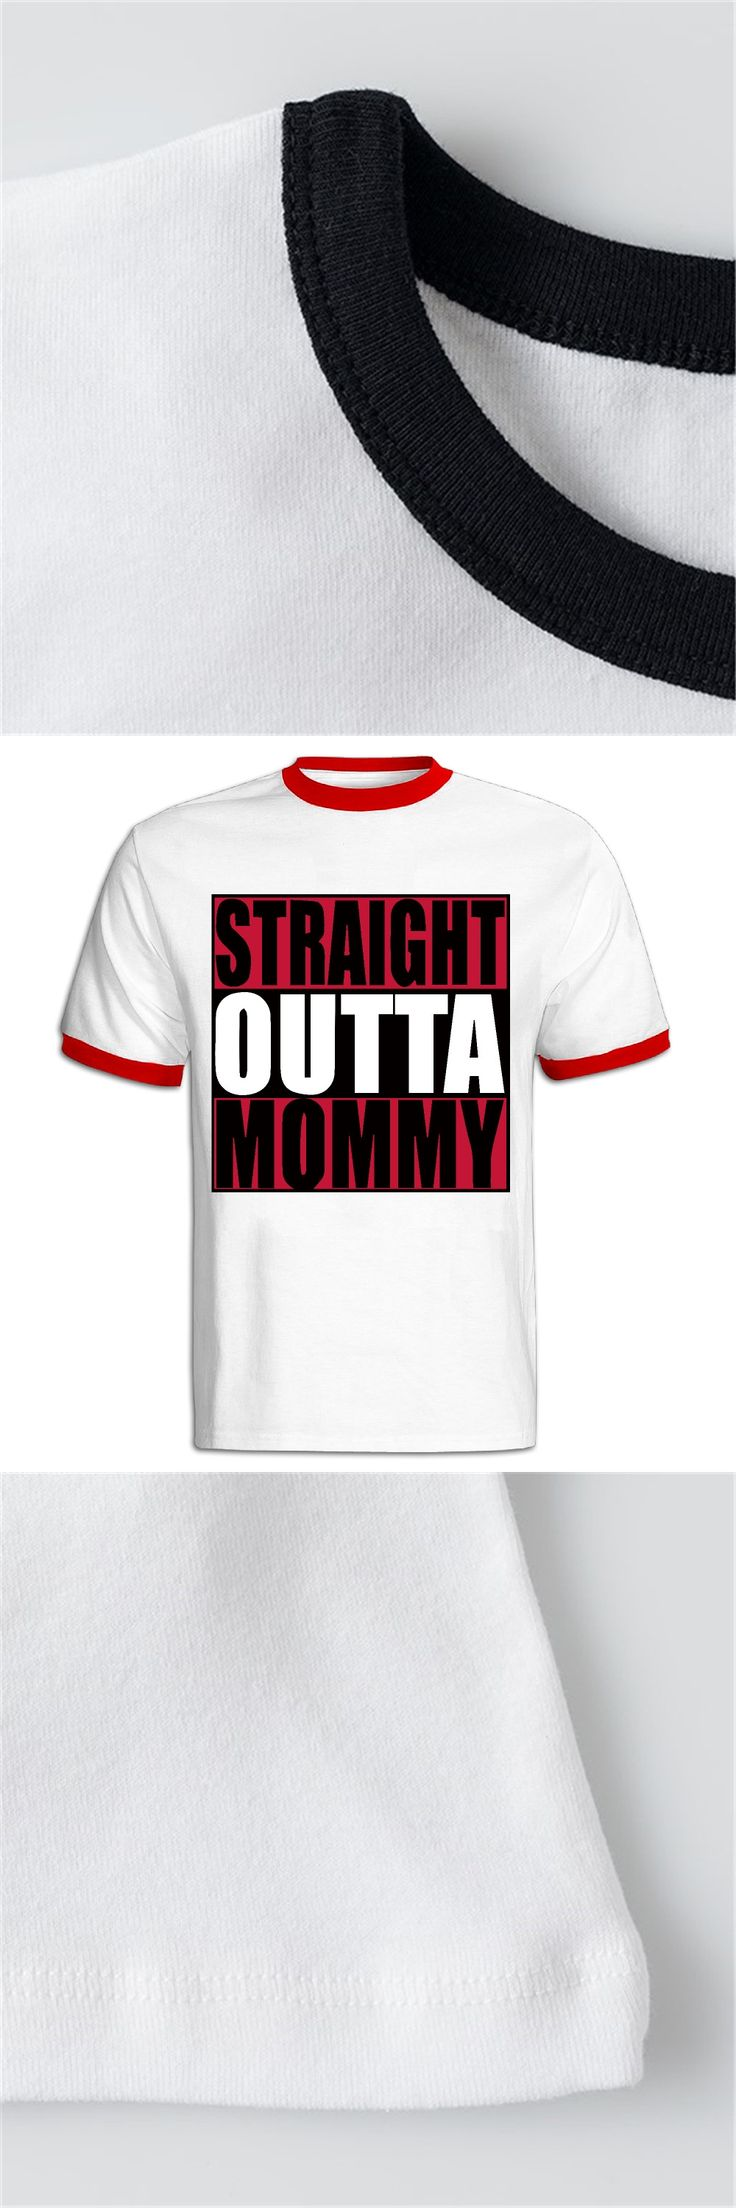 Straight Outta Mommy Ringer T shirts Tumblr Graphic Printed Personalized Tops Tee